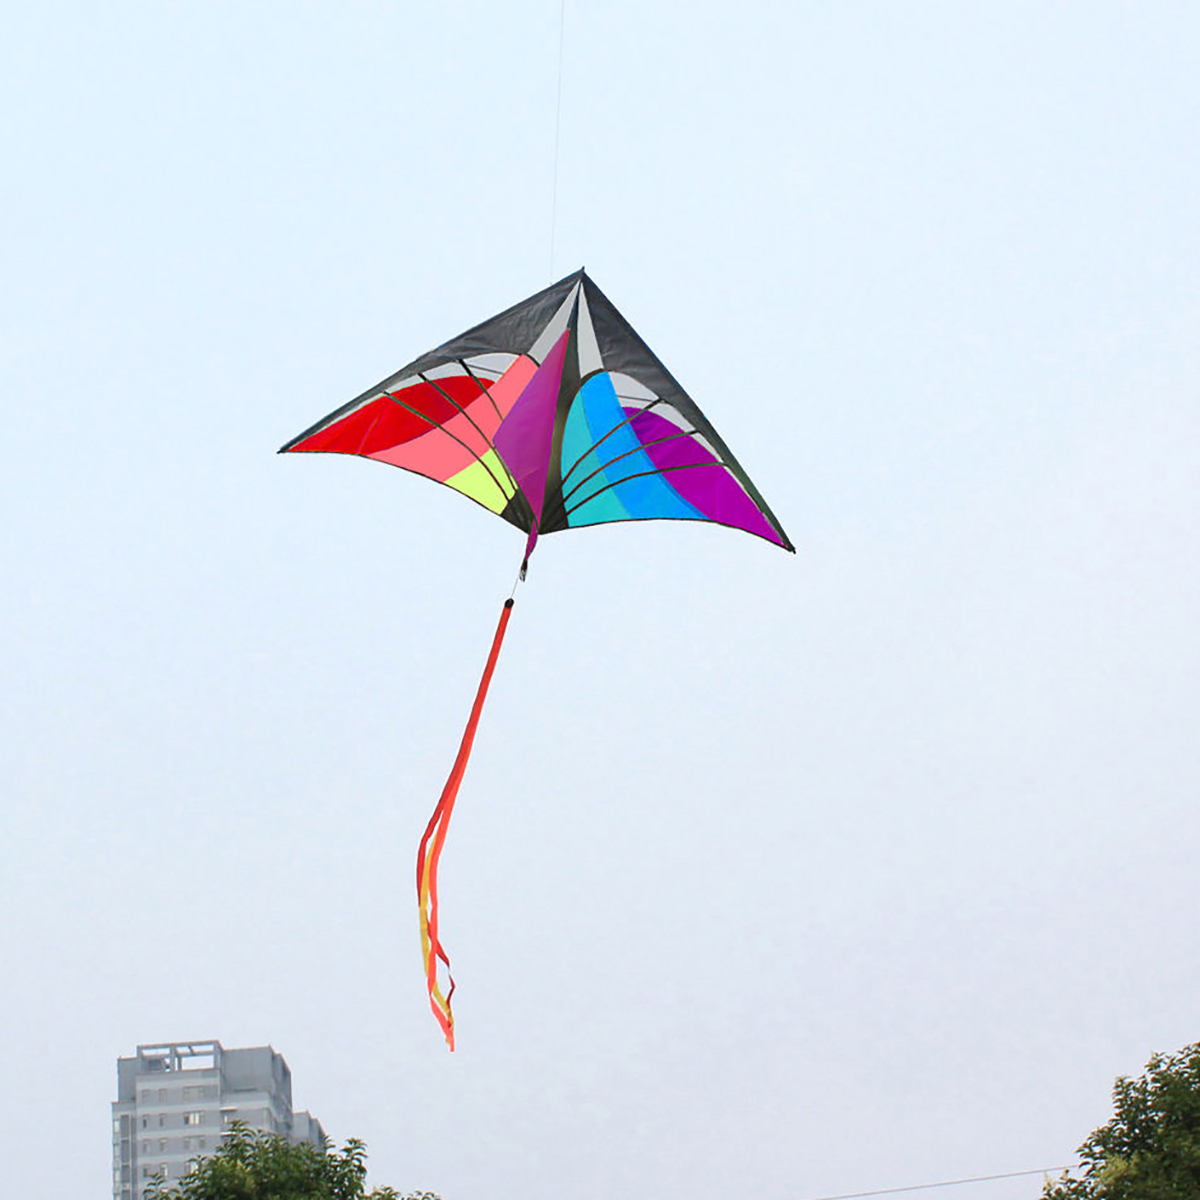 Multicolor Outdoor Sports Fun Toys Single Line Delta Triangle Long Tail Kite New Soft Flying Toys For Children Kids Family Tool